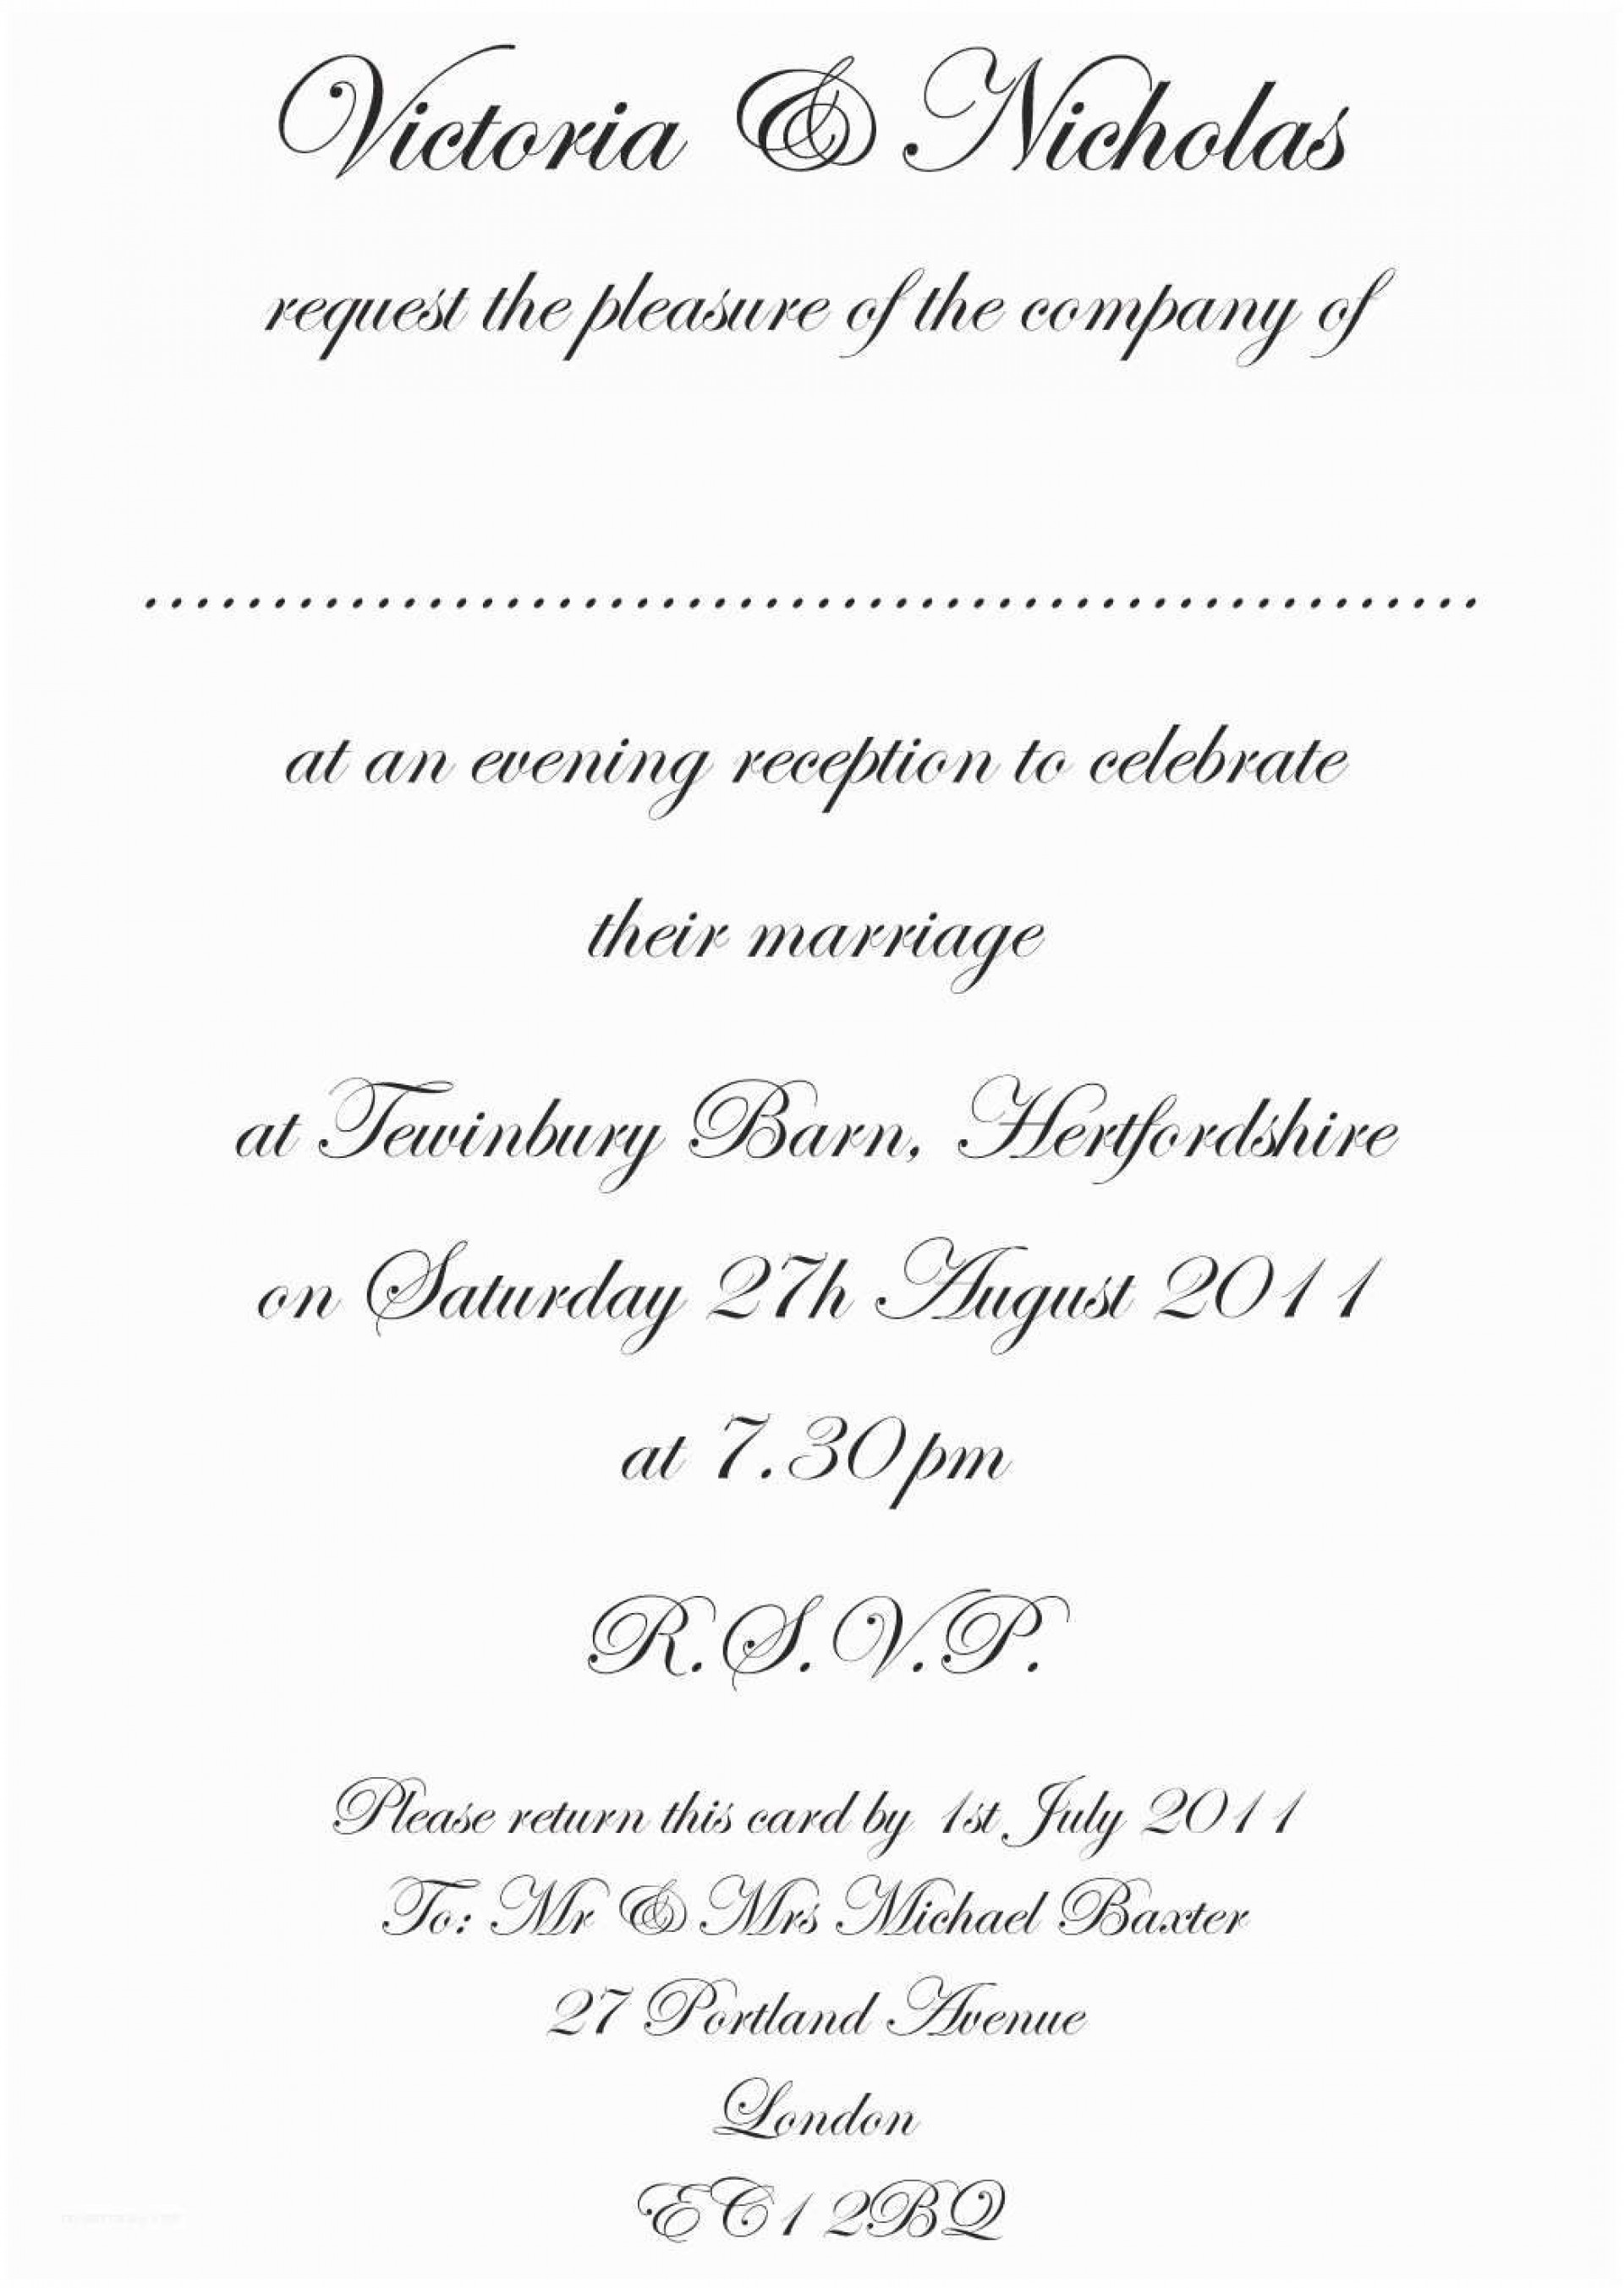 010 Astounding Formal Wedding Invitation Template Highest Quality  Templates Email Format Wording Free1920